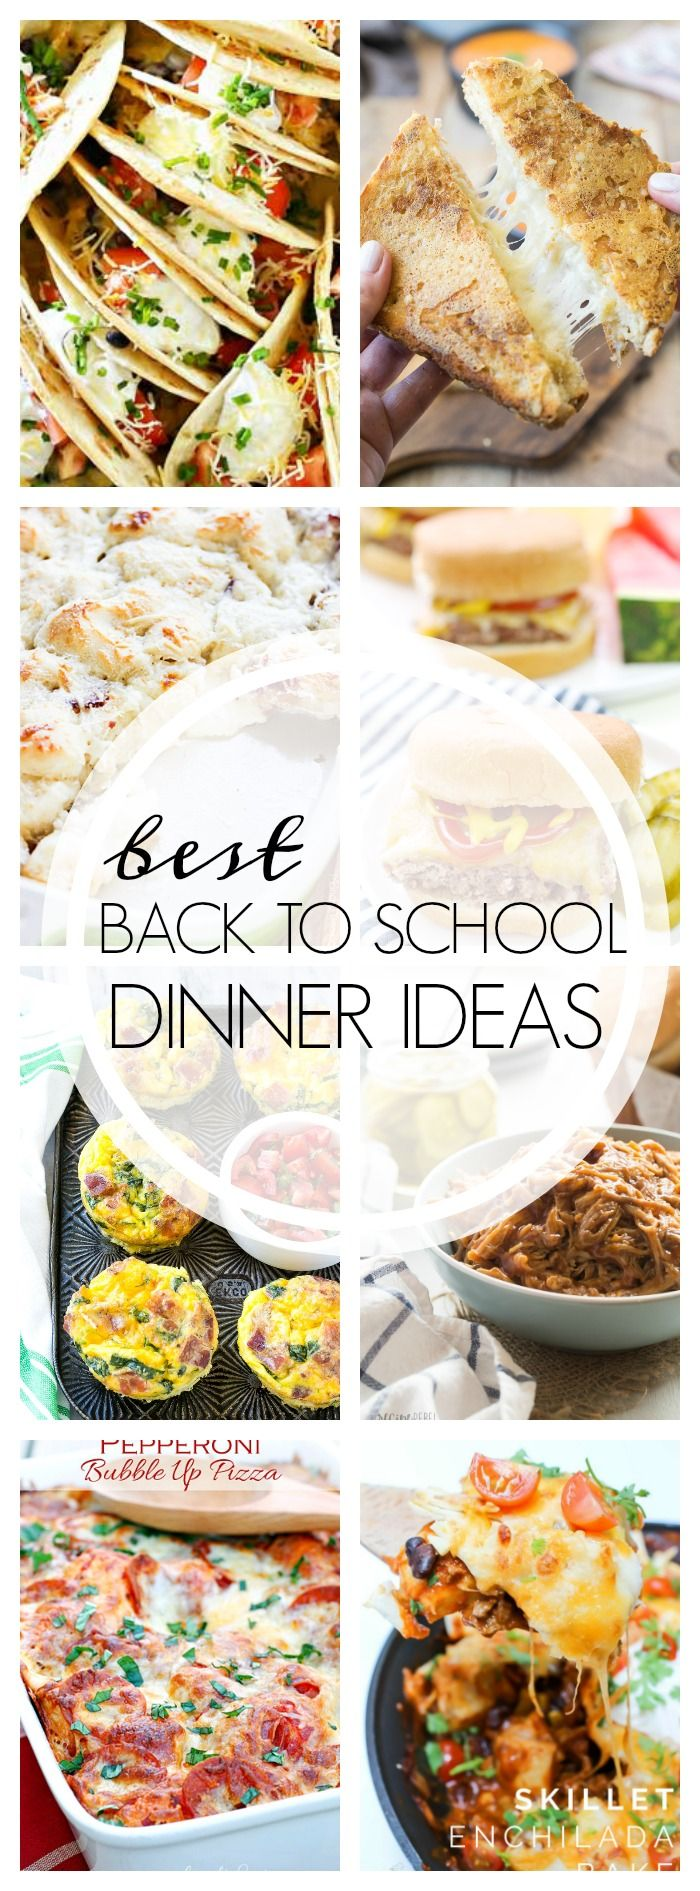 We have put together this collection of the best Back to School Dinner Ideas that the whole family will love. Be sure to pin this because you'll need!